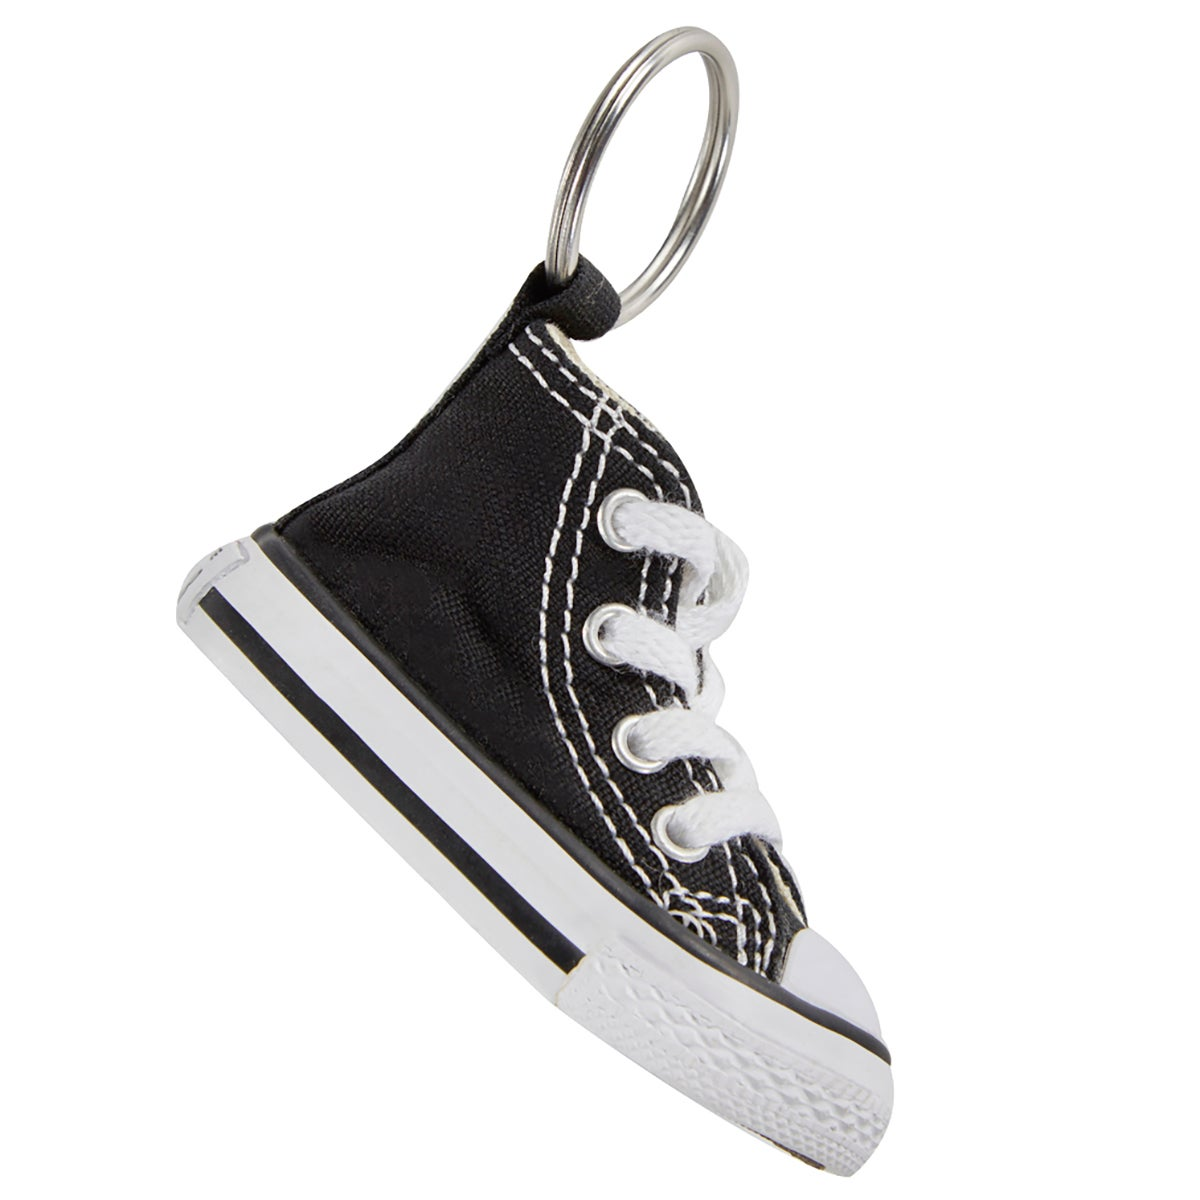 CT Key Chain Hi black